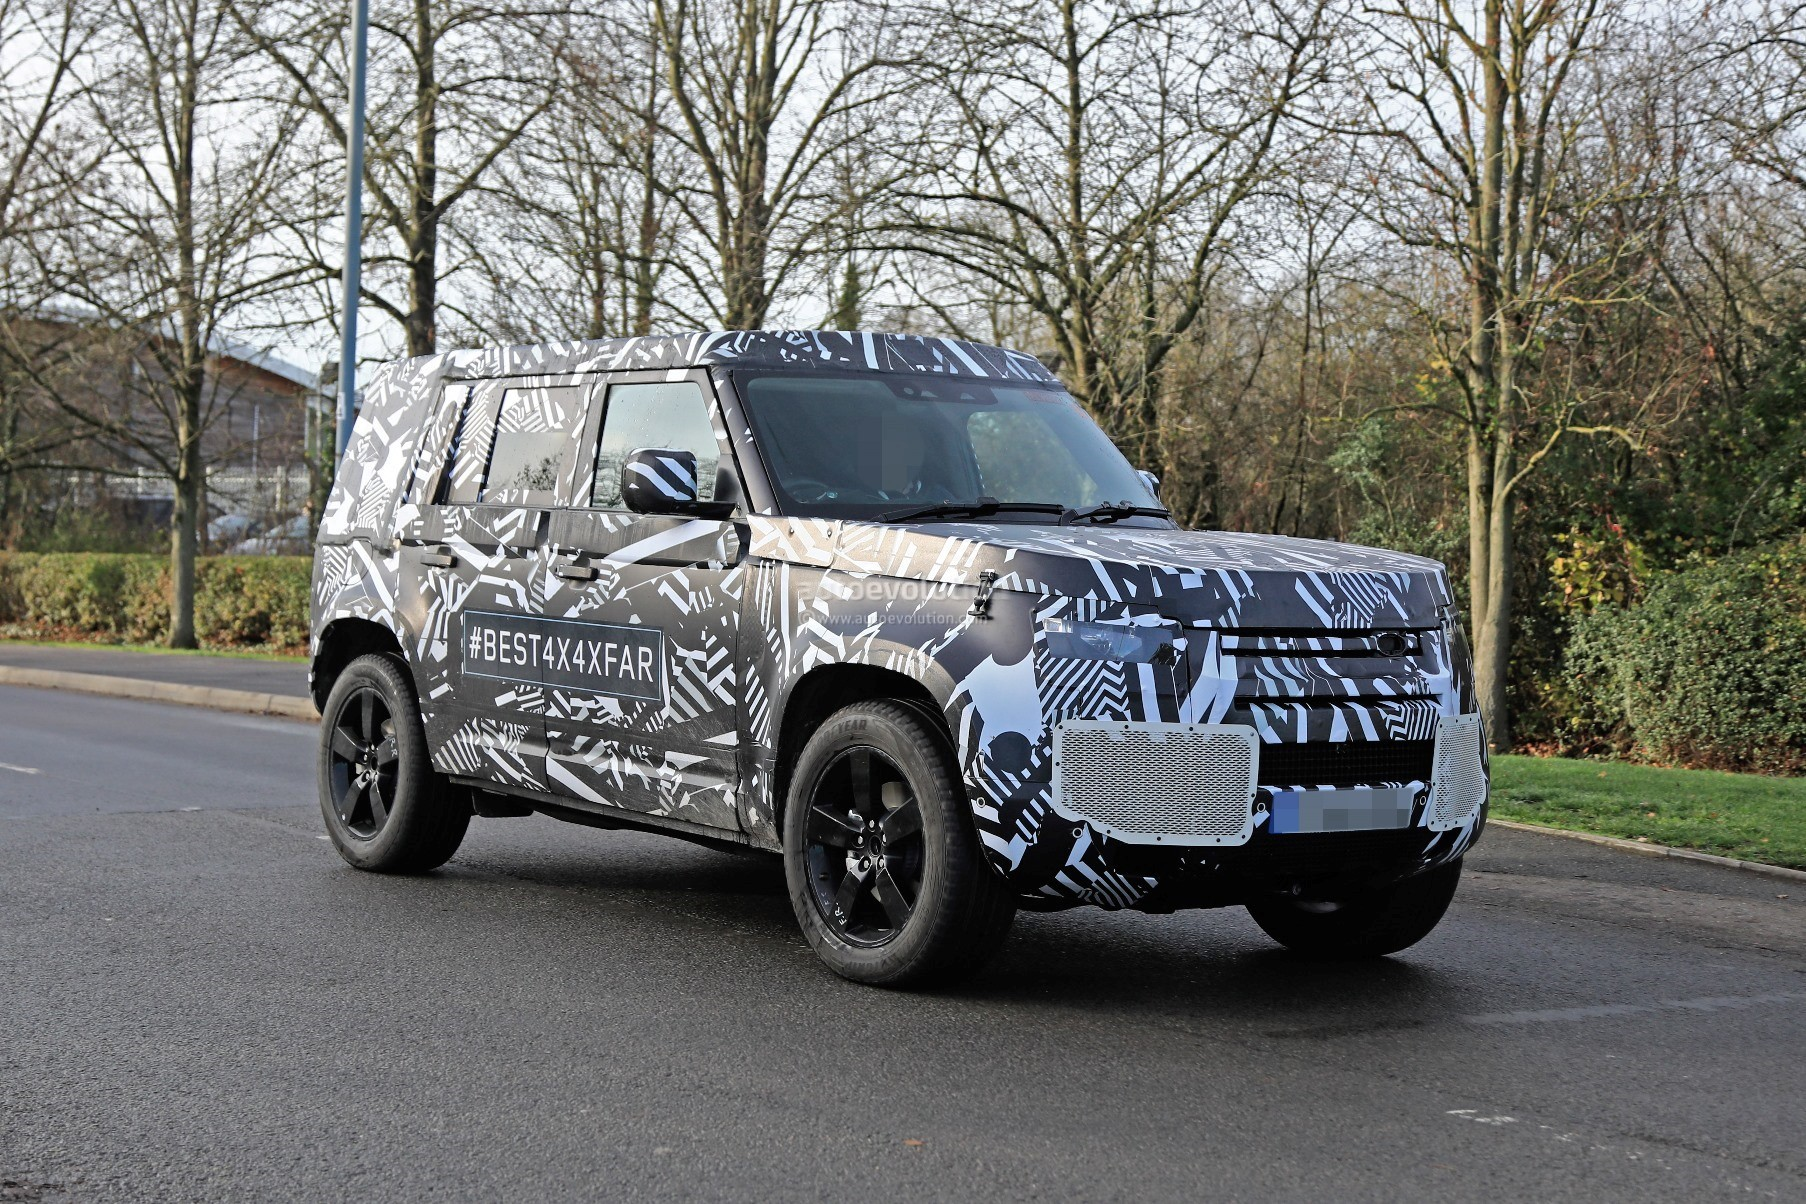 2020 Land Rover Defender Spied, Transitions To Unibody ...